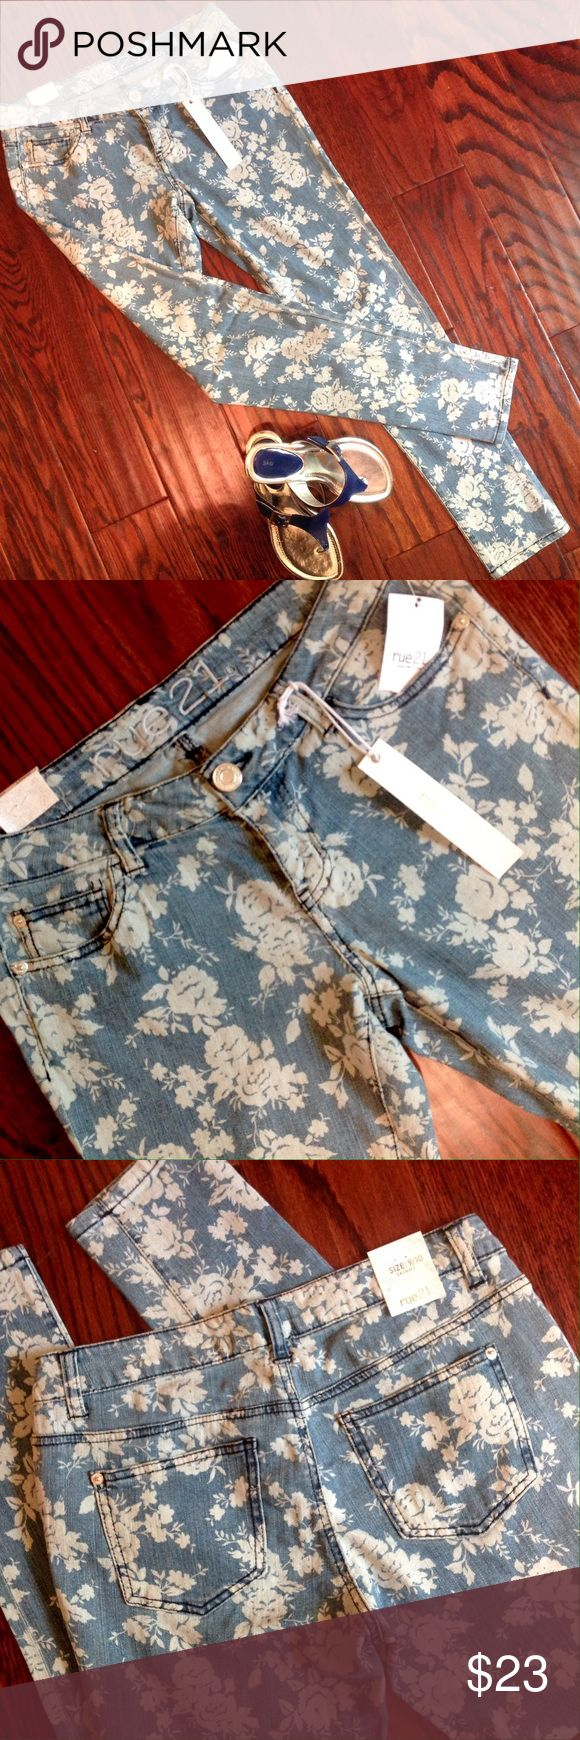 "Rue 21 Floral Print Skinny Jean Size 9 NWT NWT. Rue 21 blue and cream floral print skinny jeans.  Size 9/10.  Waist 30"", Inseam 31"".  Please ask all your questions before you purchase!  Sorry, no trades. Please, no lowball offers. Rue 21 Jeans Skinny"